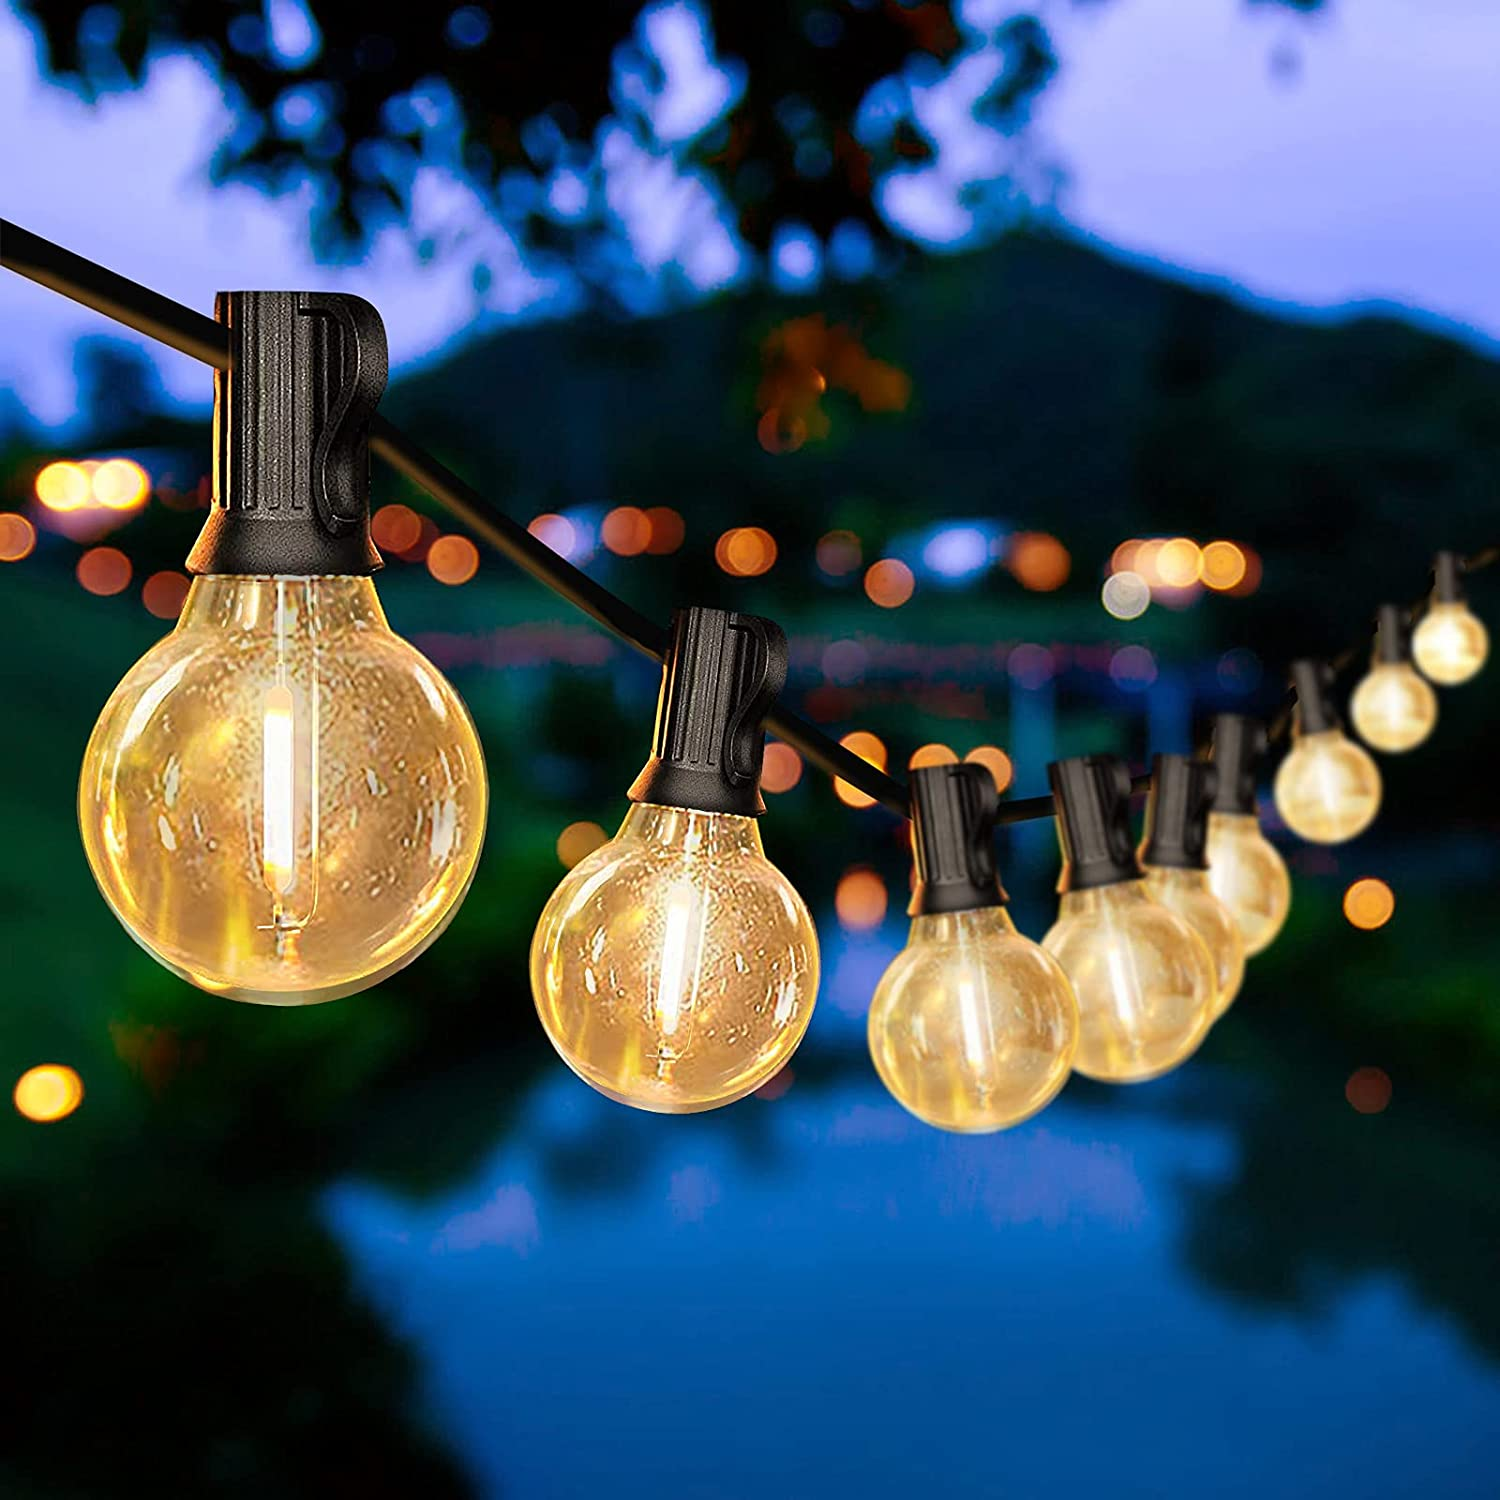 Daybetter 50ft Outdoor String Lights $20.99 Coupon